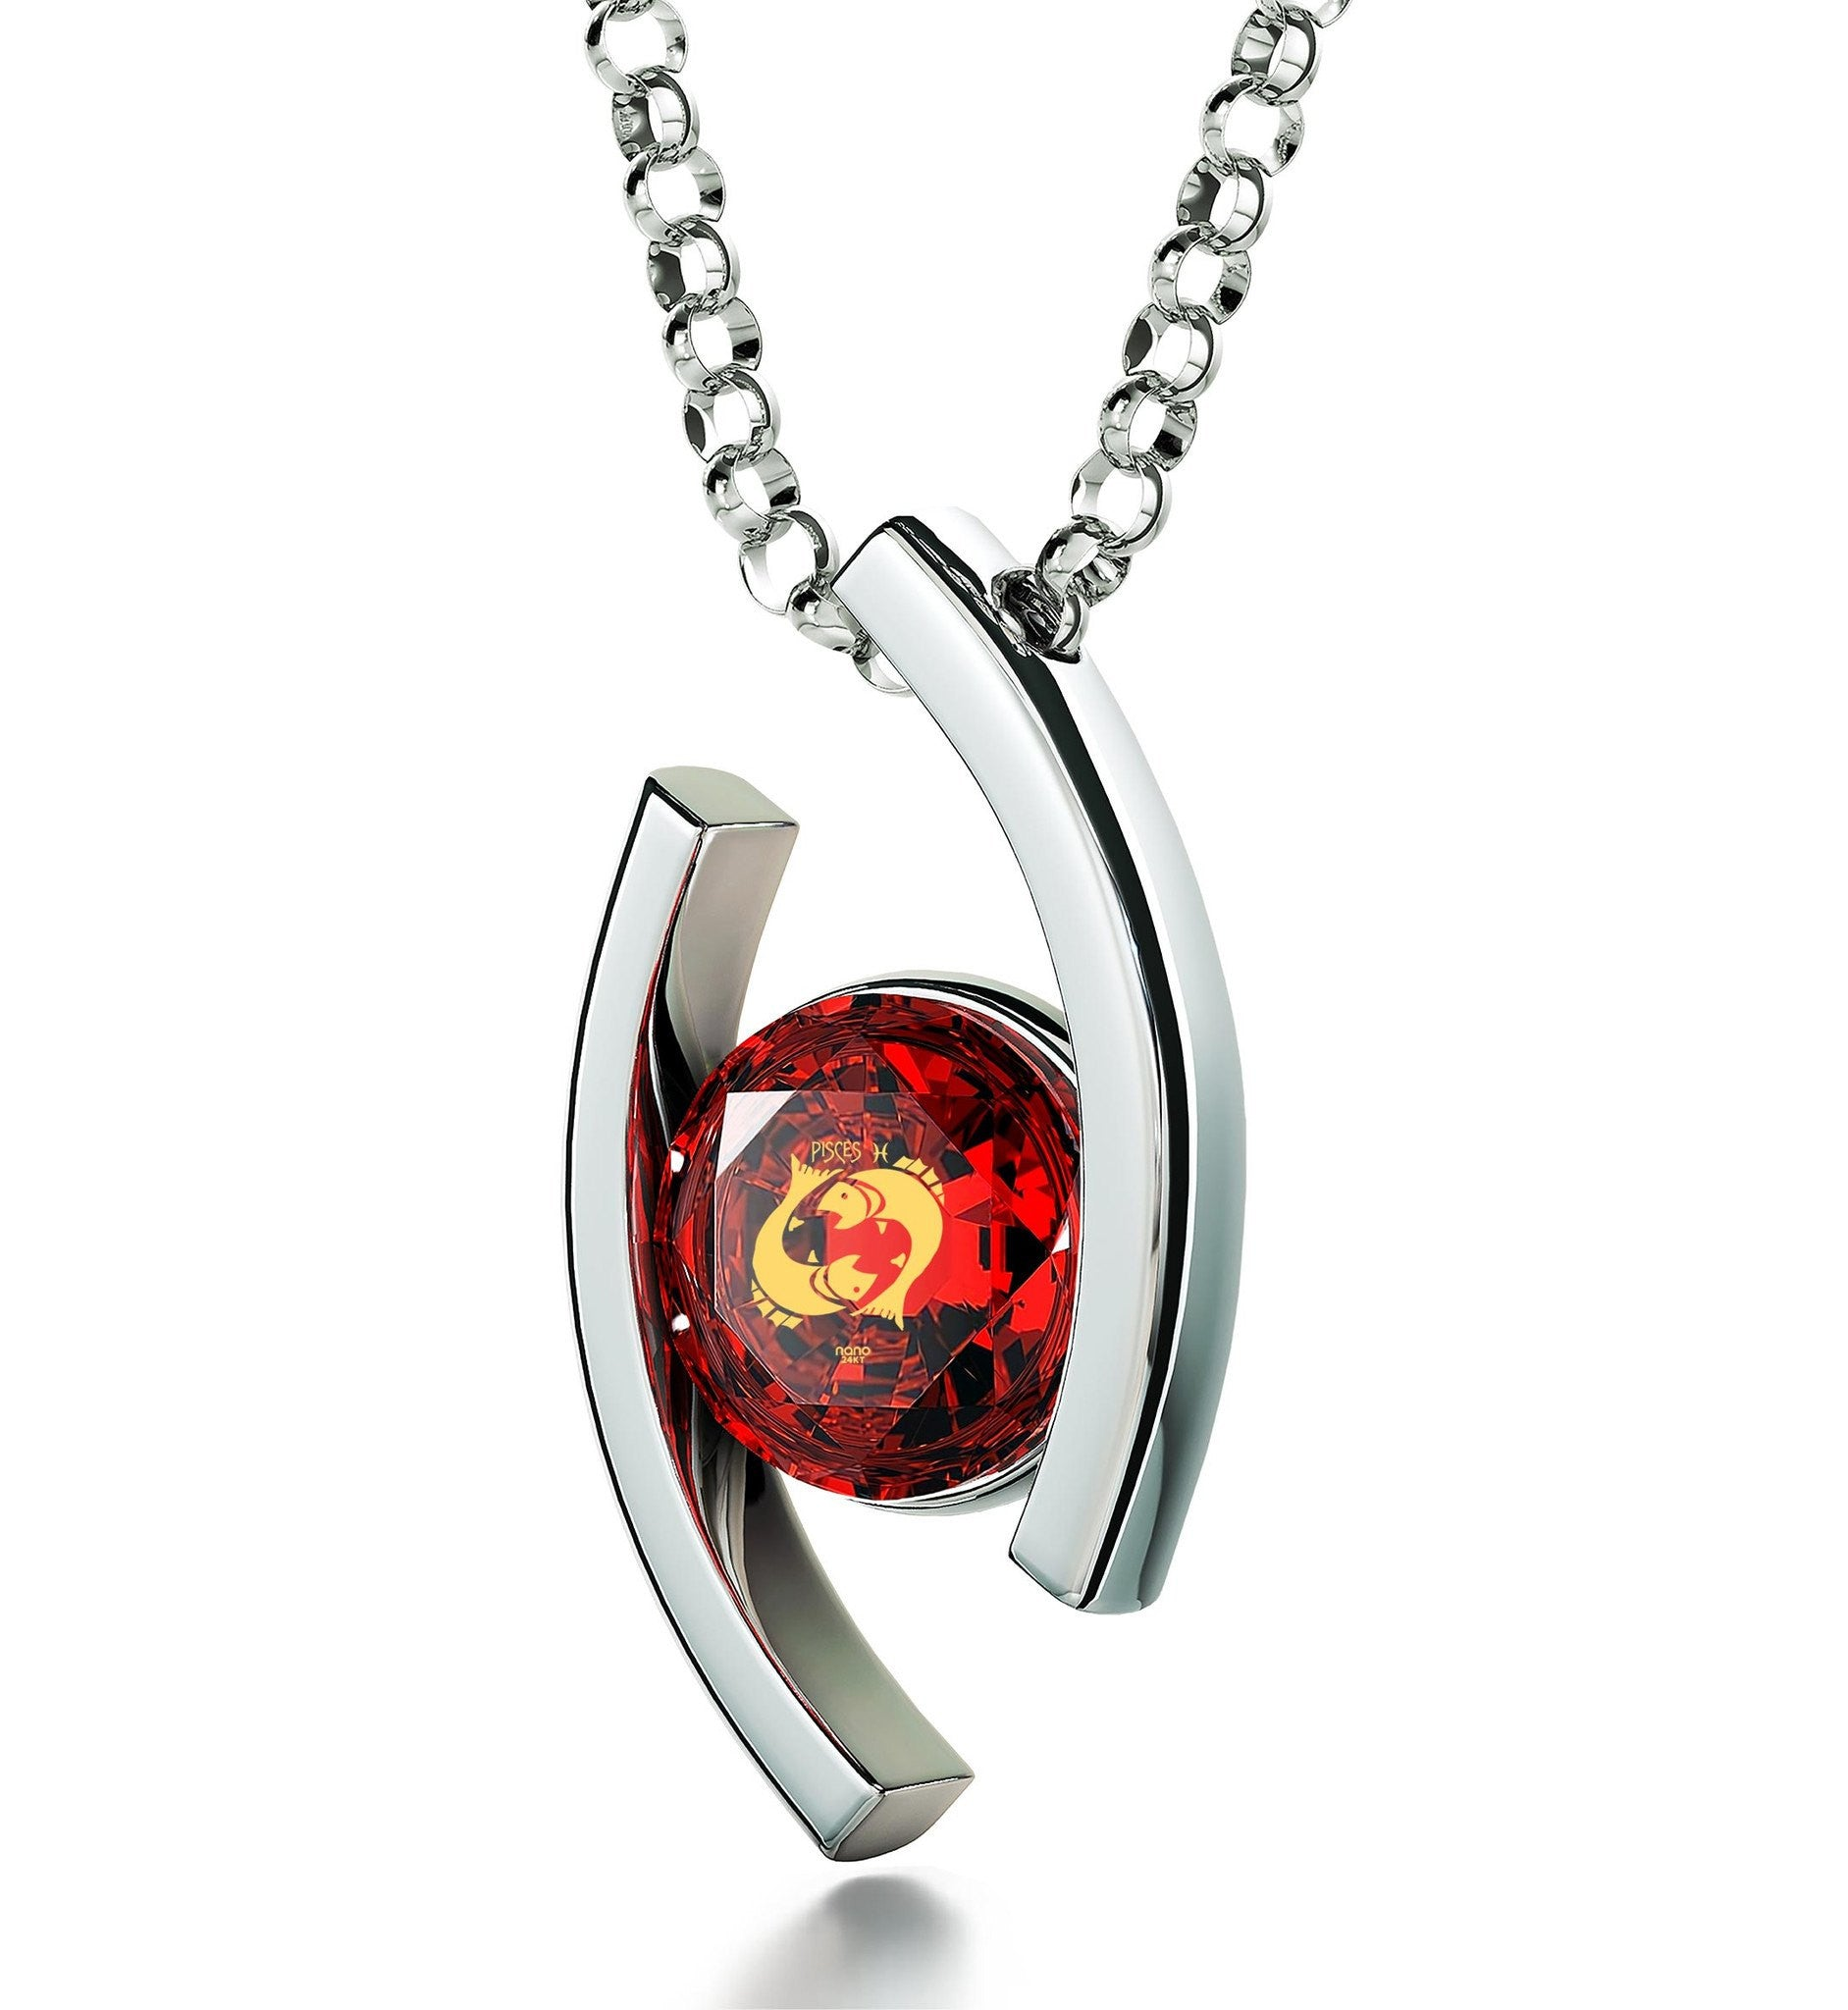 """Pisces Pendant With 24k Imprint, Womens Presents, Top Gift Ideas for Women, Ruby Necklace """